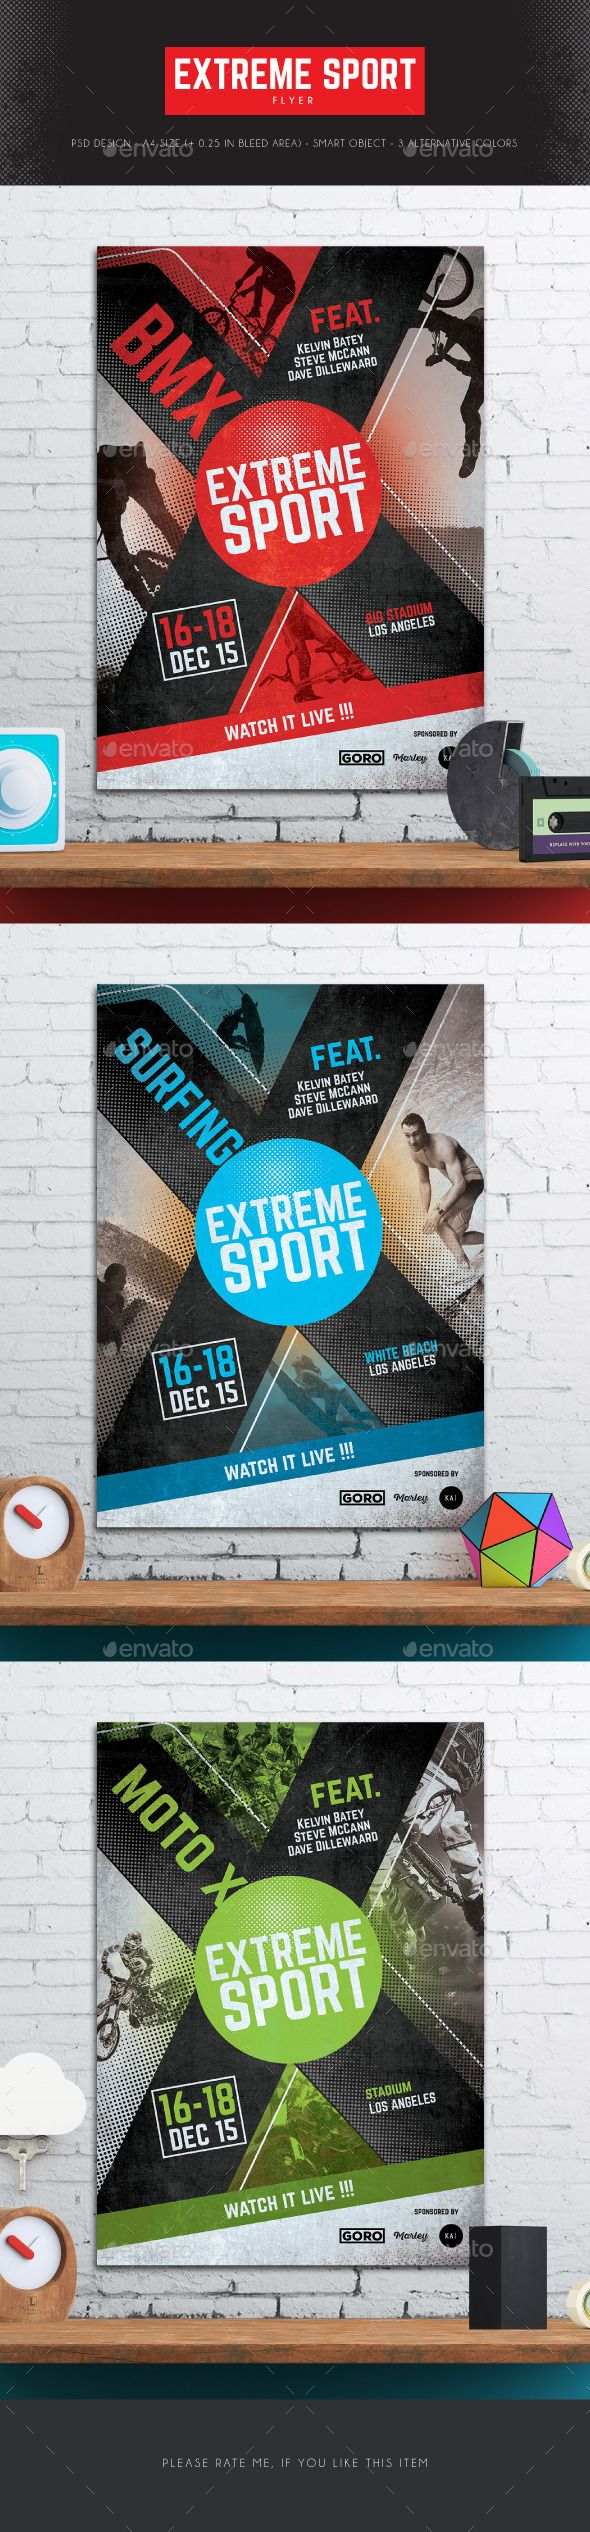 Extreme Sport Flyer  Flyer Template Template And Event Flyers